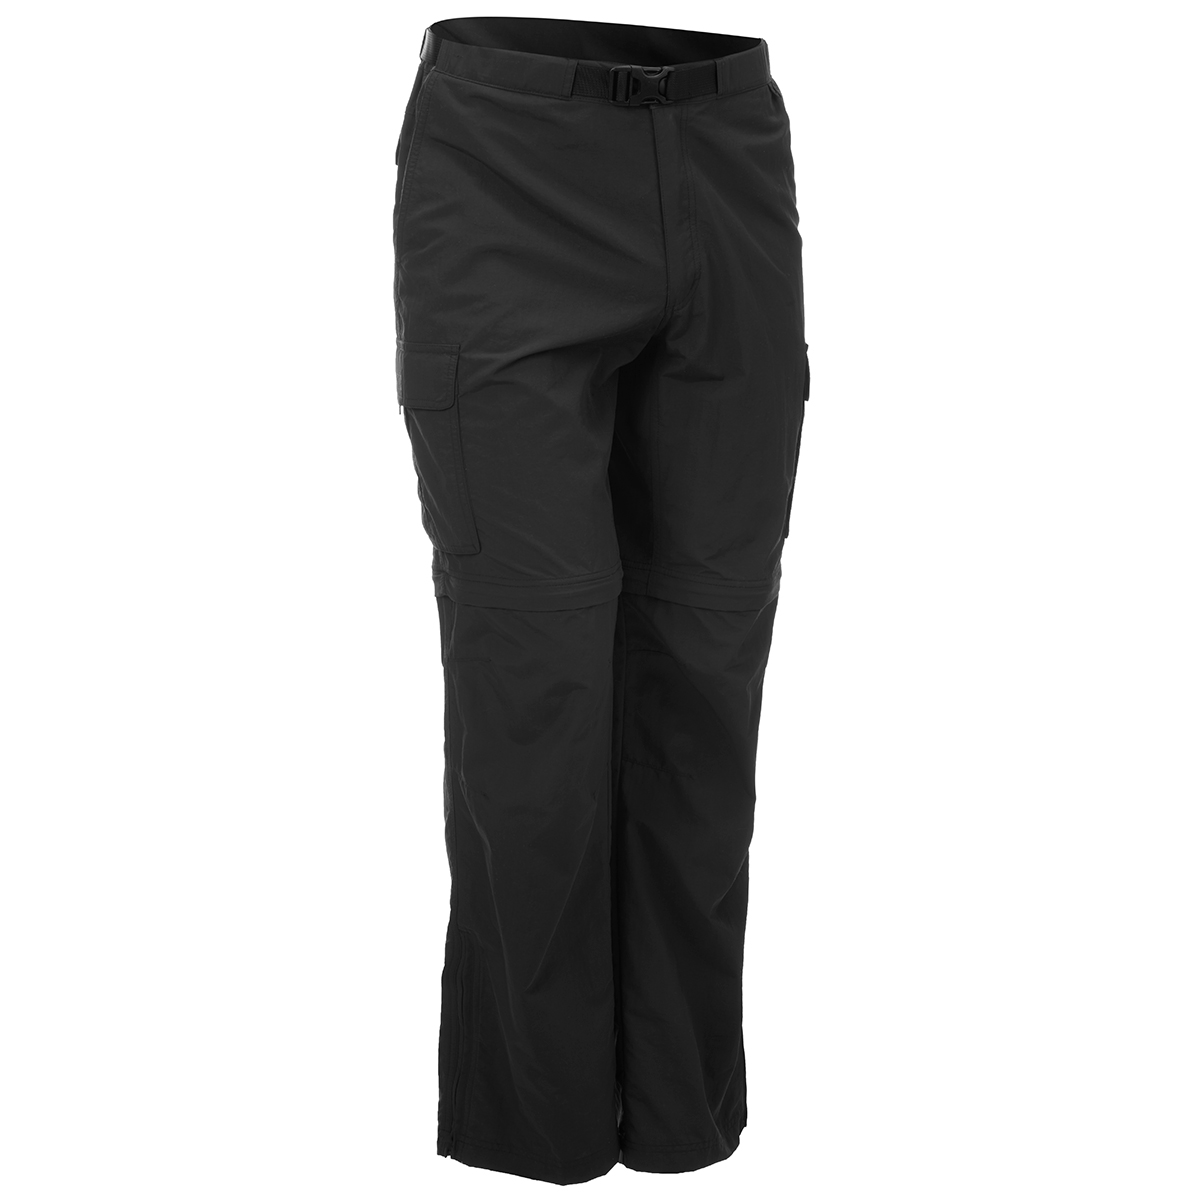 Ems Men's Camp Cargo Zip-Off Pants - Black, 36/30